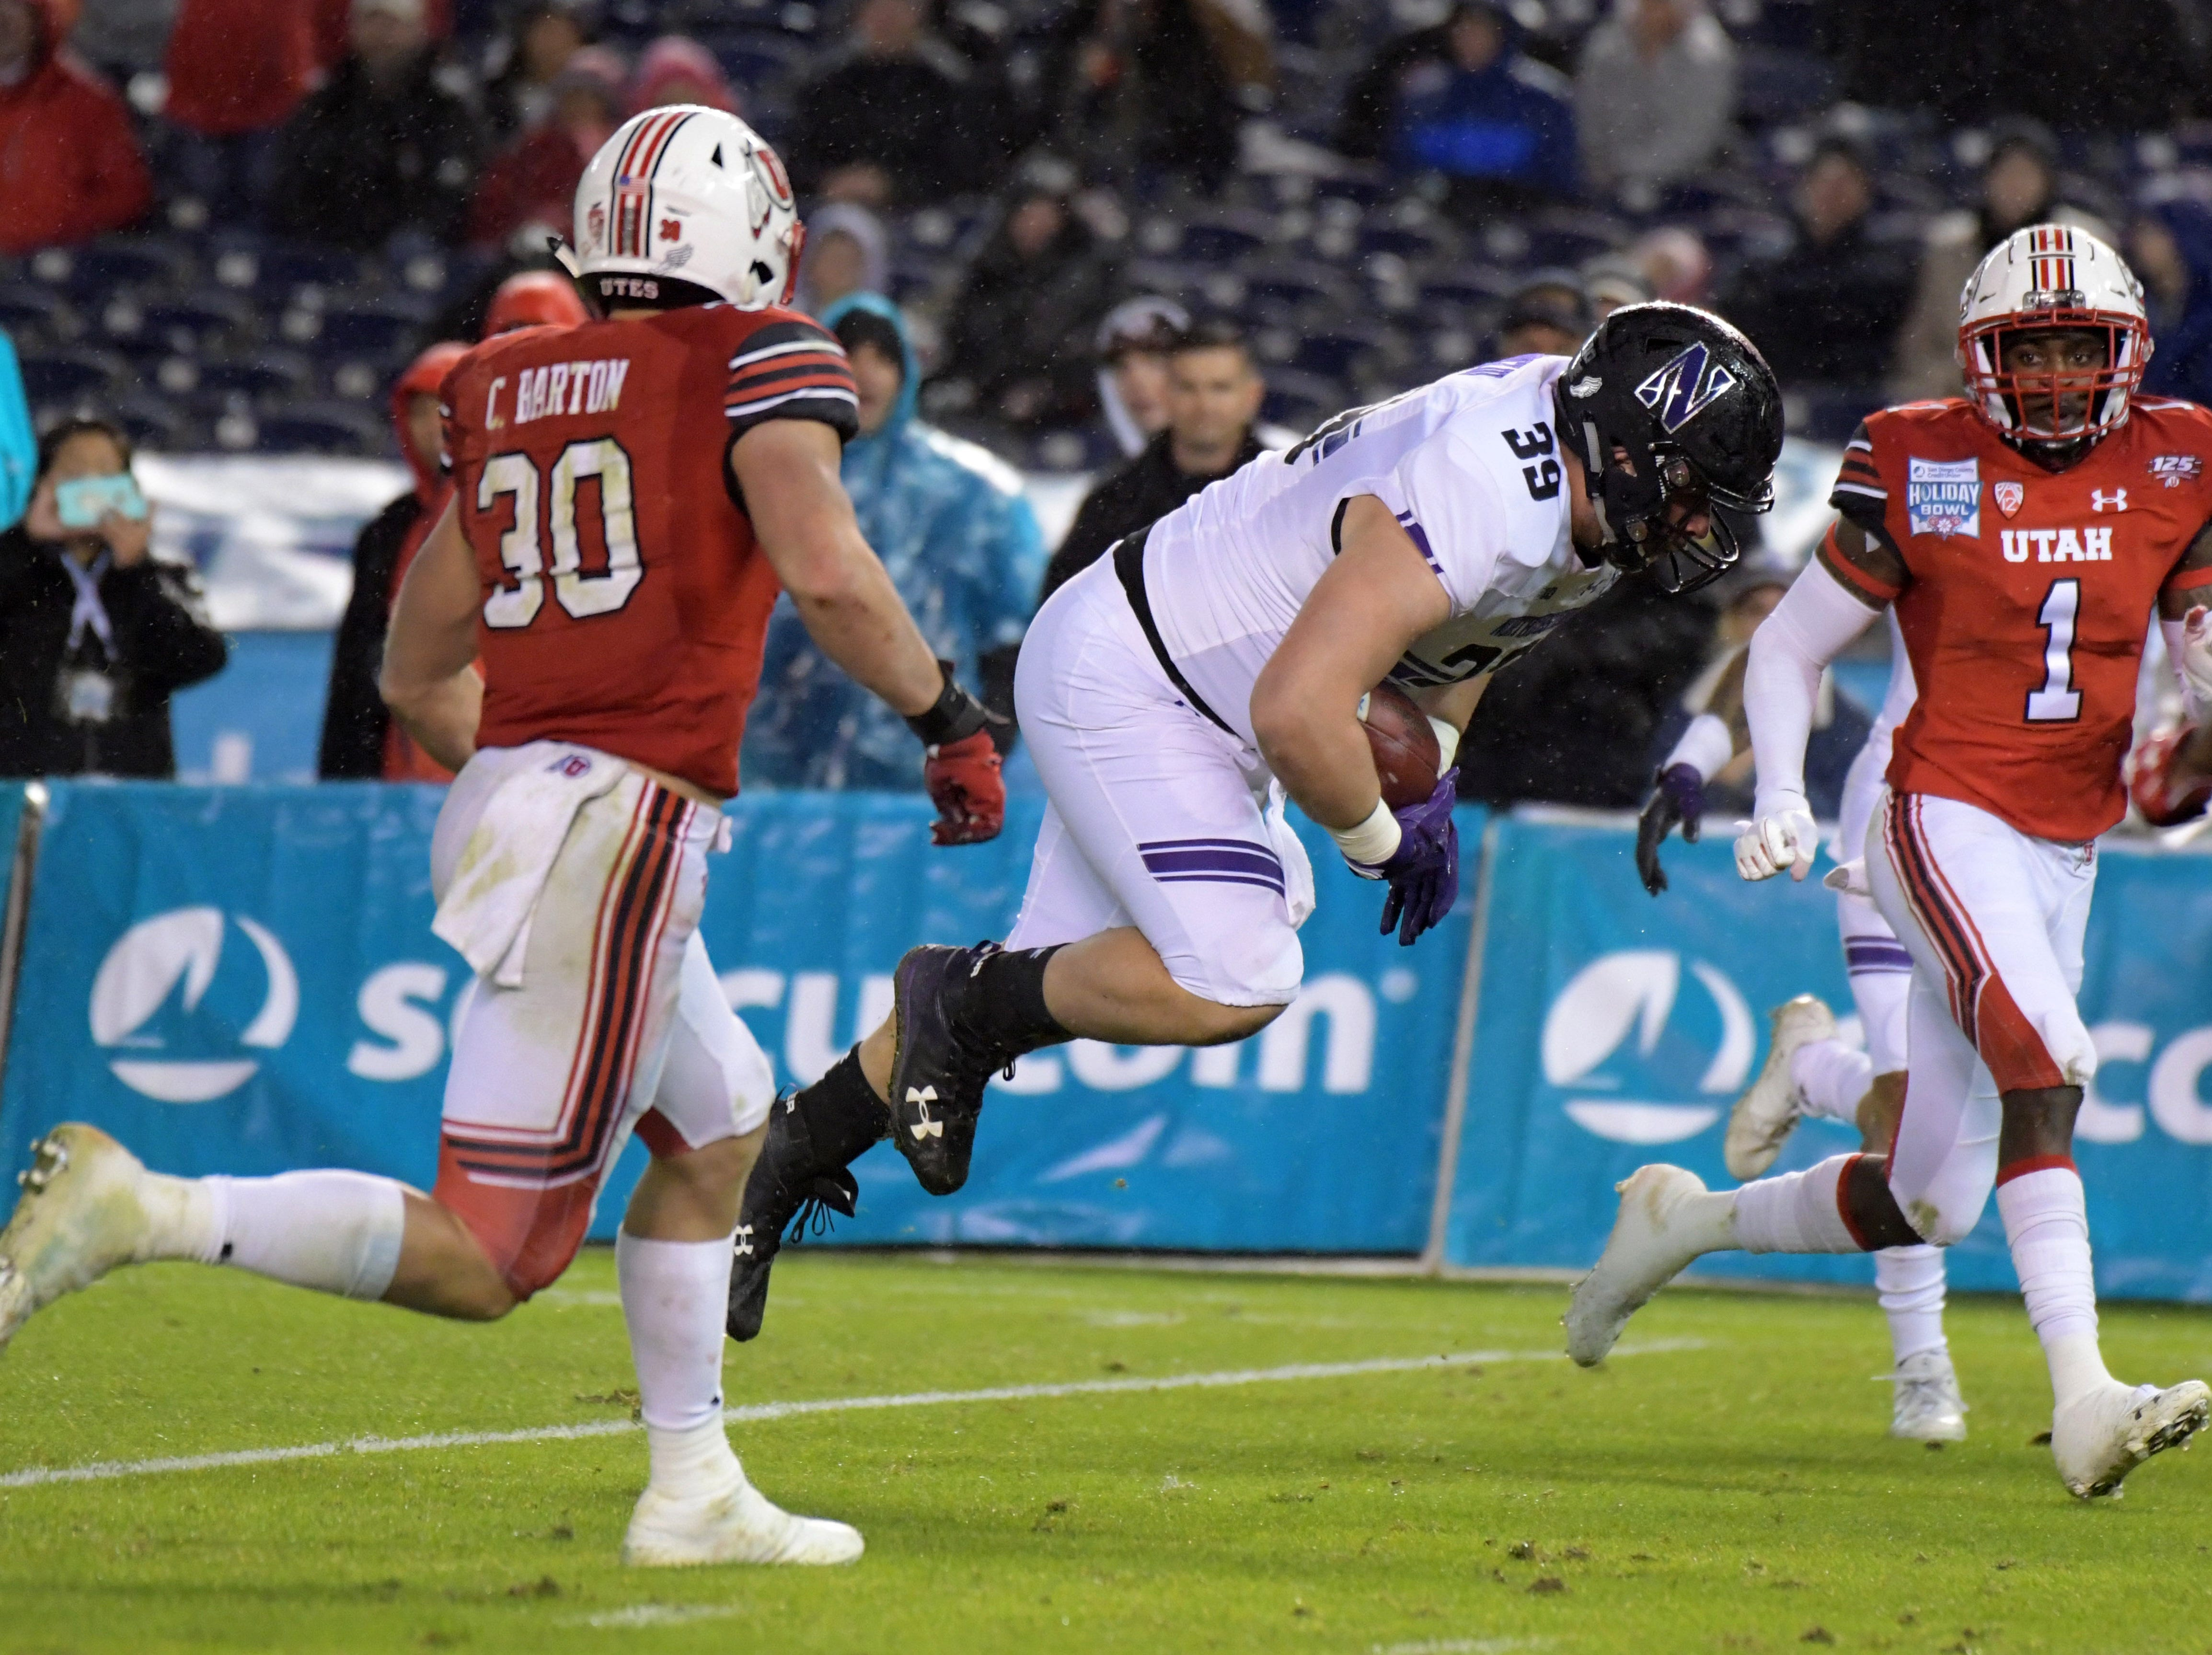 Northwestern Wildcats offensive lineman Trey Klock (39) scores on a 20-yard touchdown reception against the Utah Utes in the Holiday Bowl.